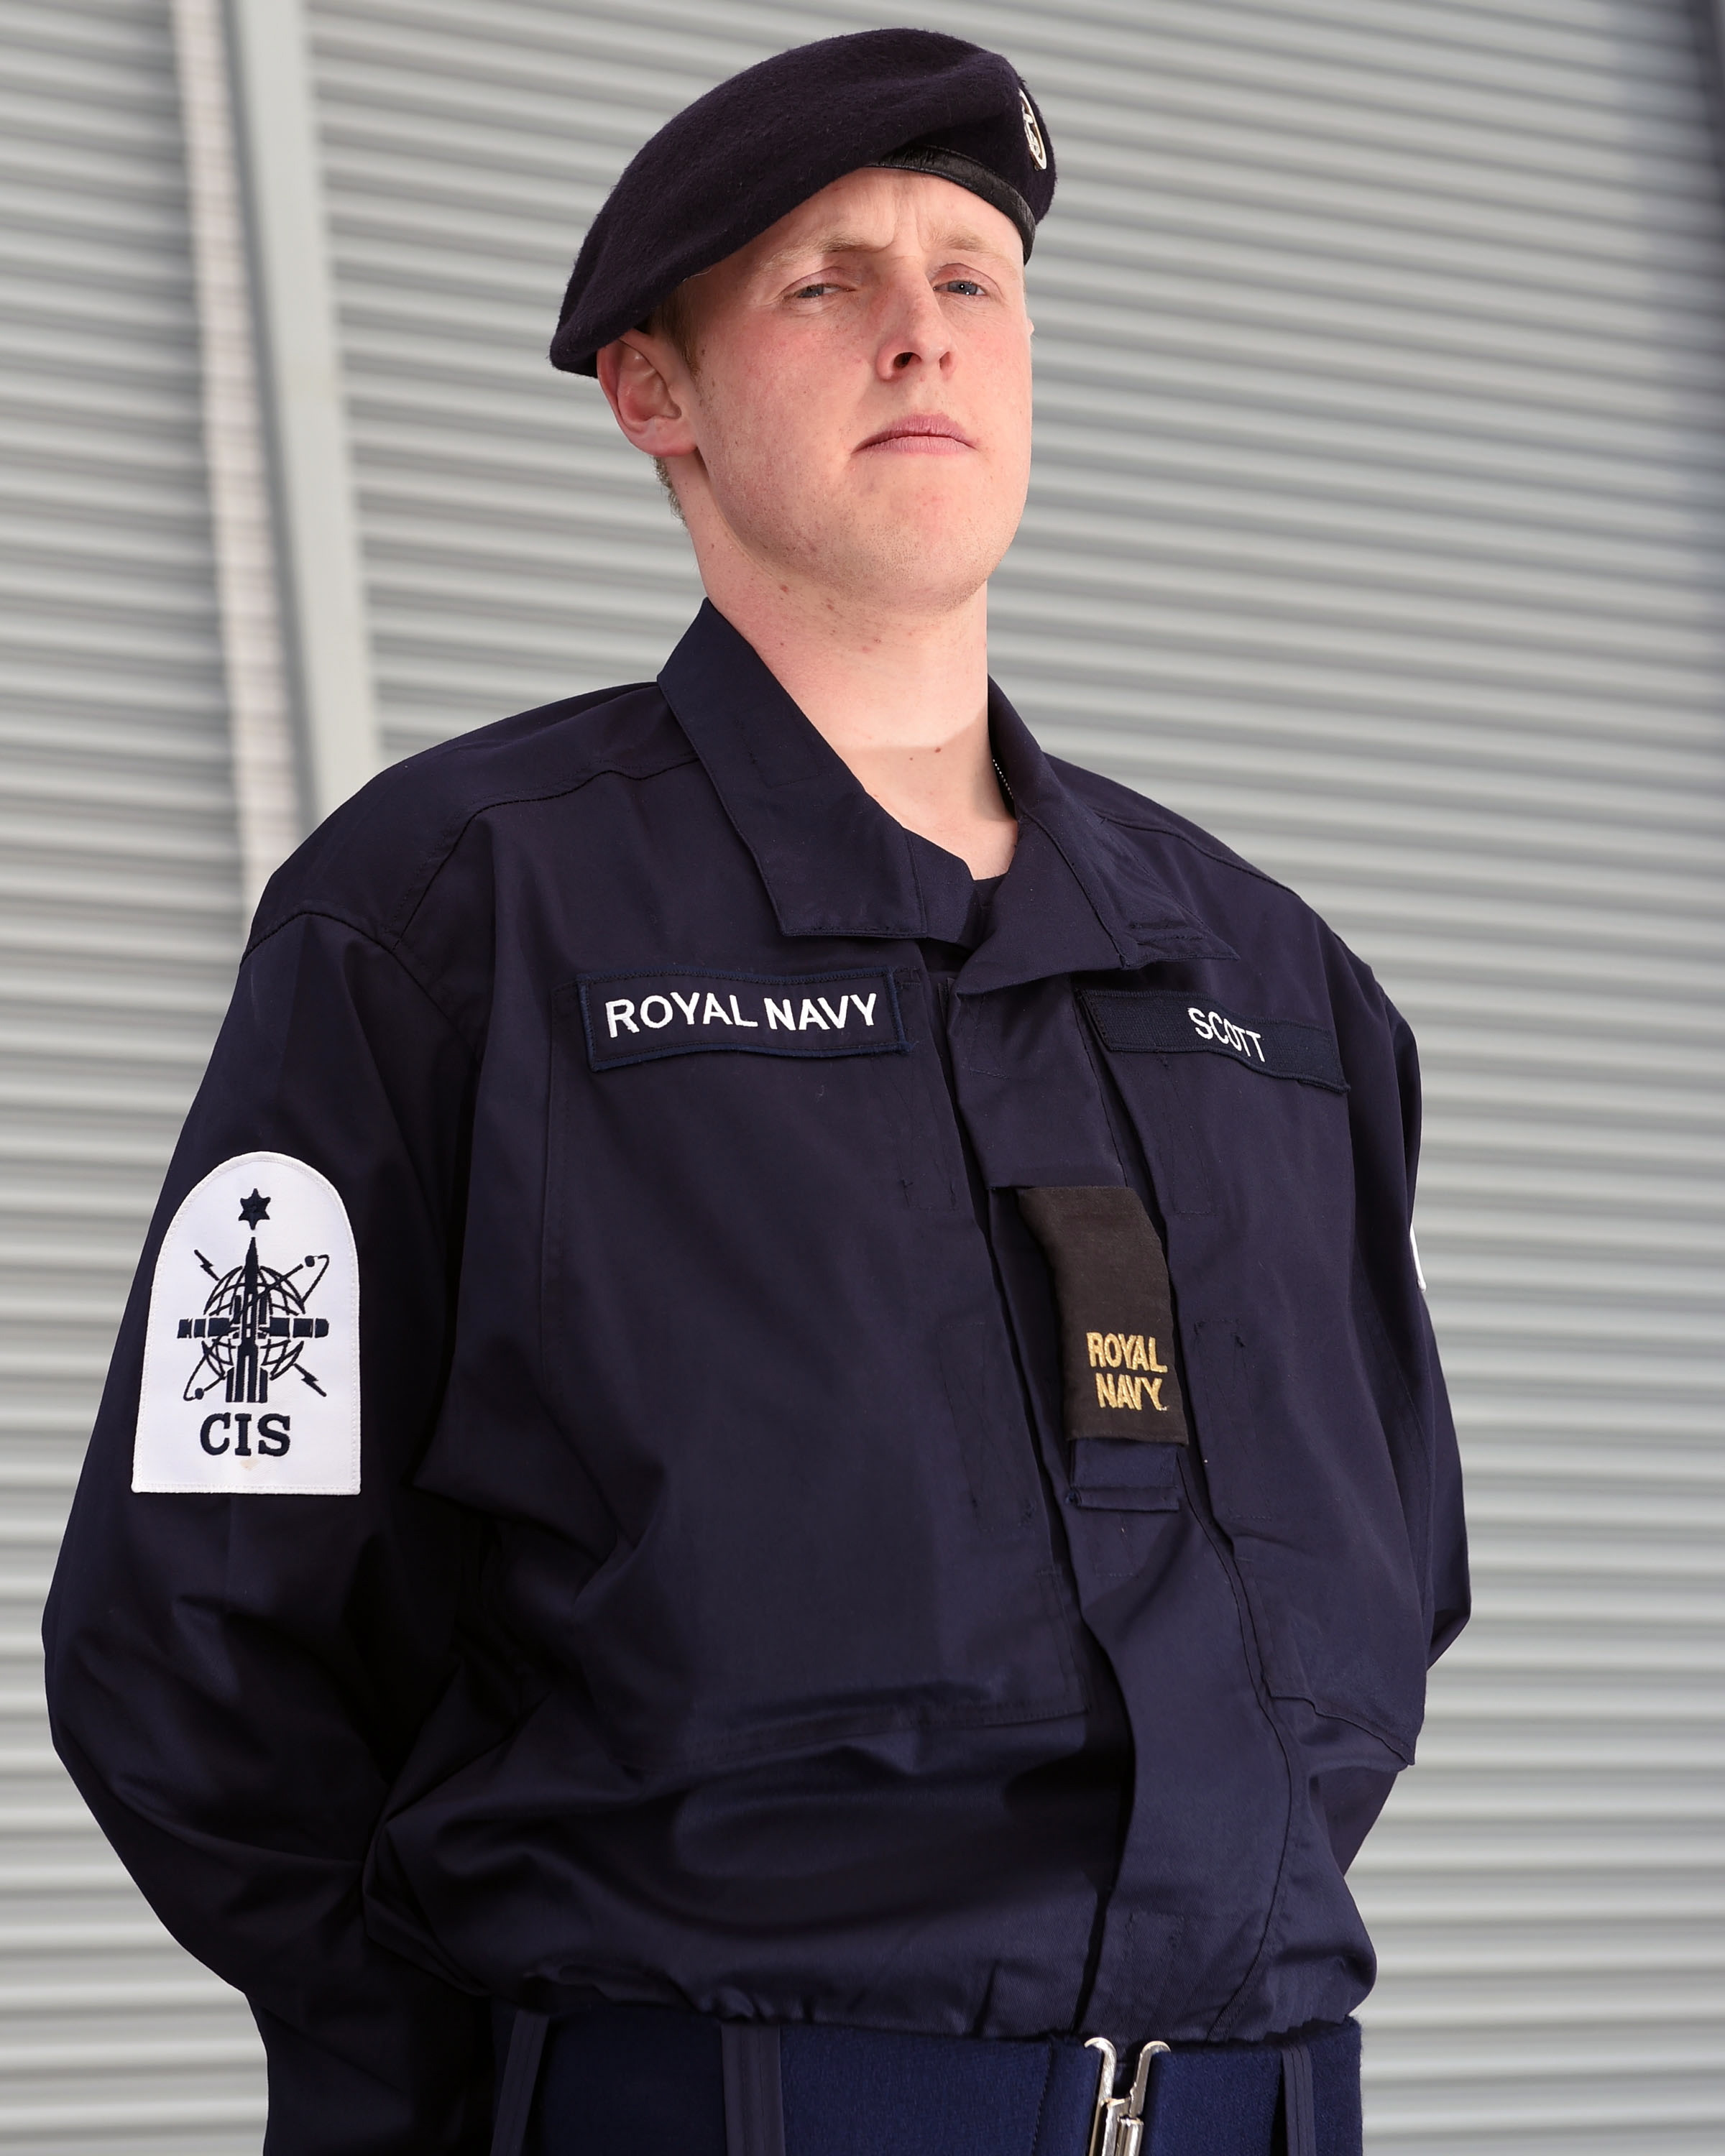 New Royal Navy uniform first worn by Portsmouth crew